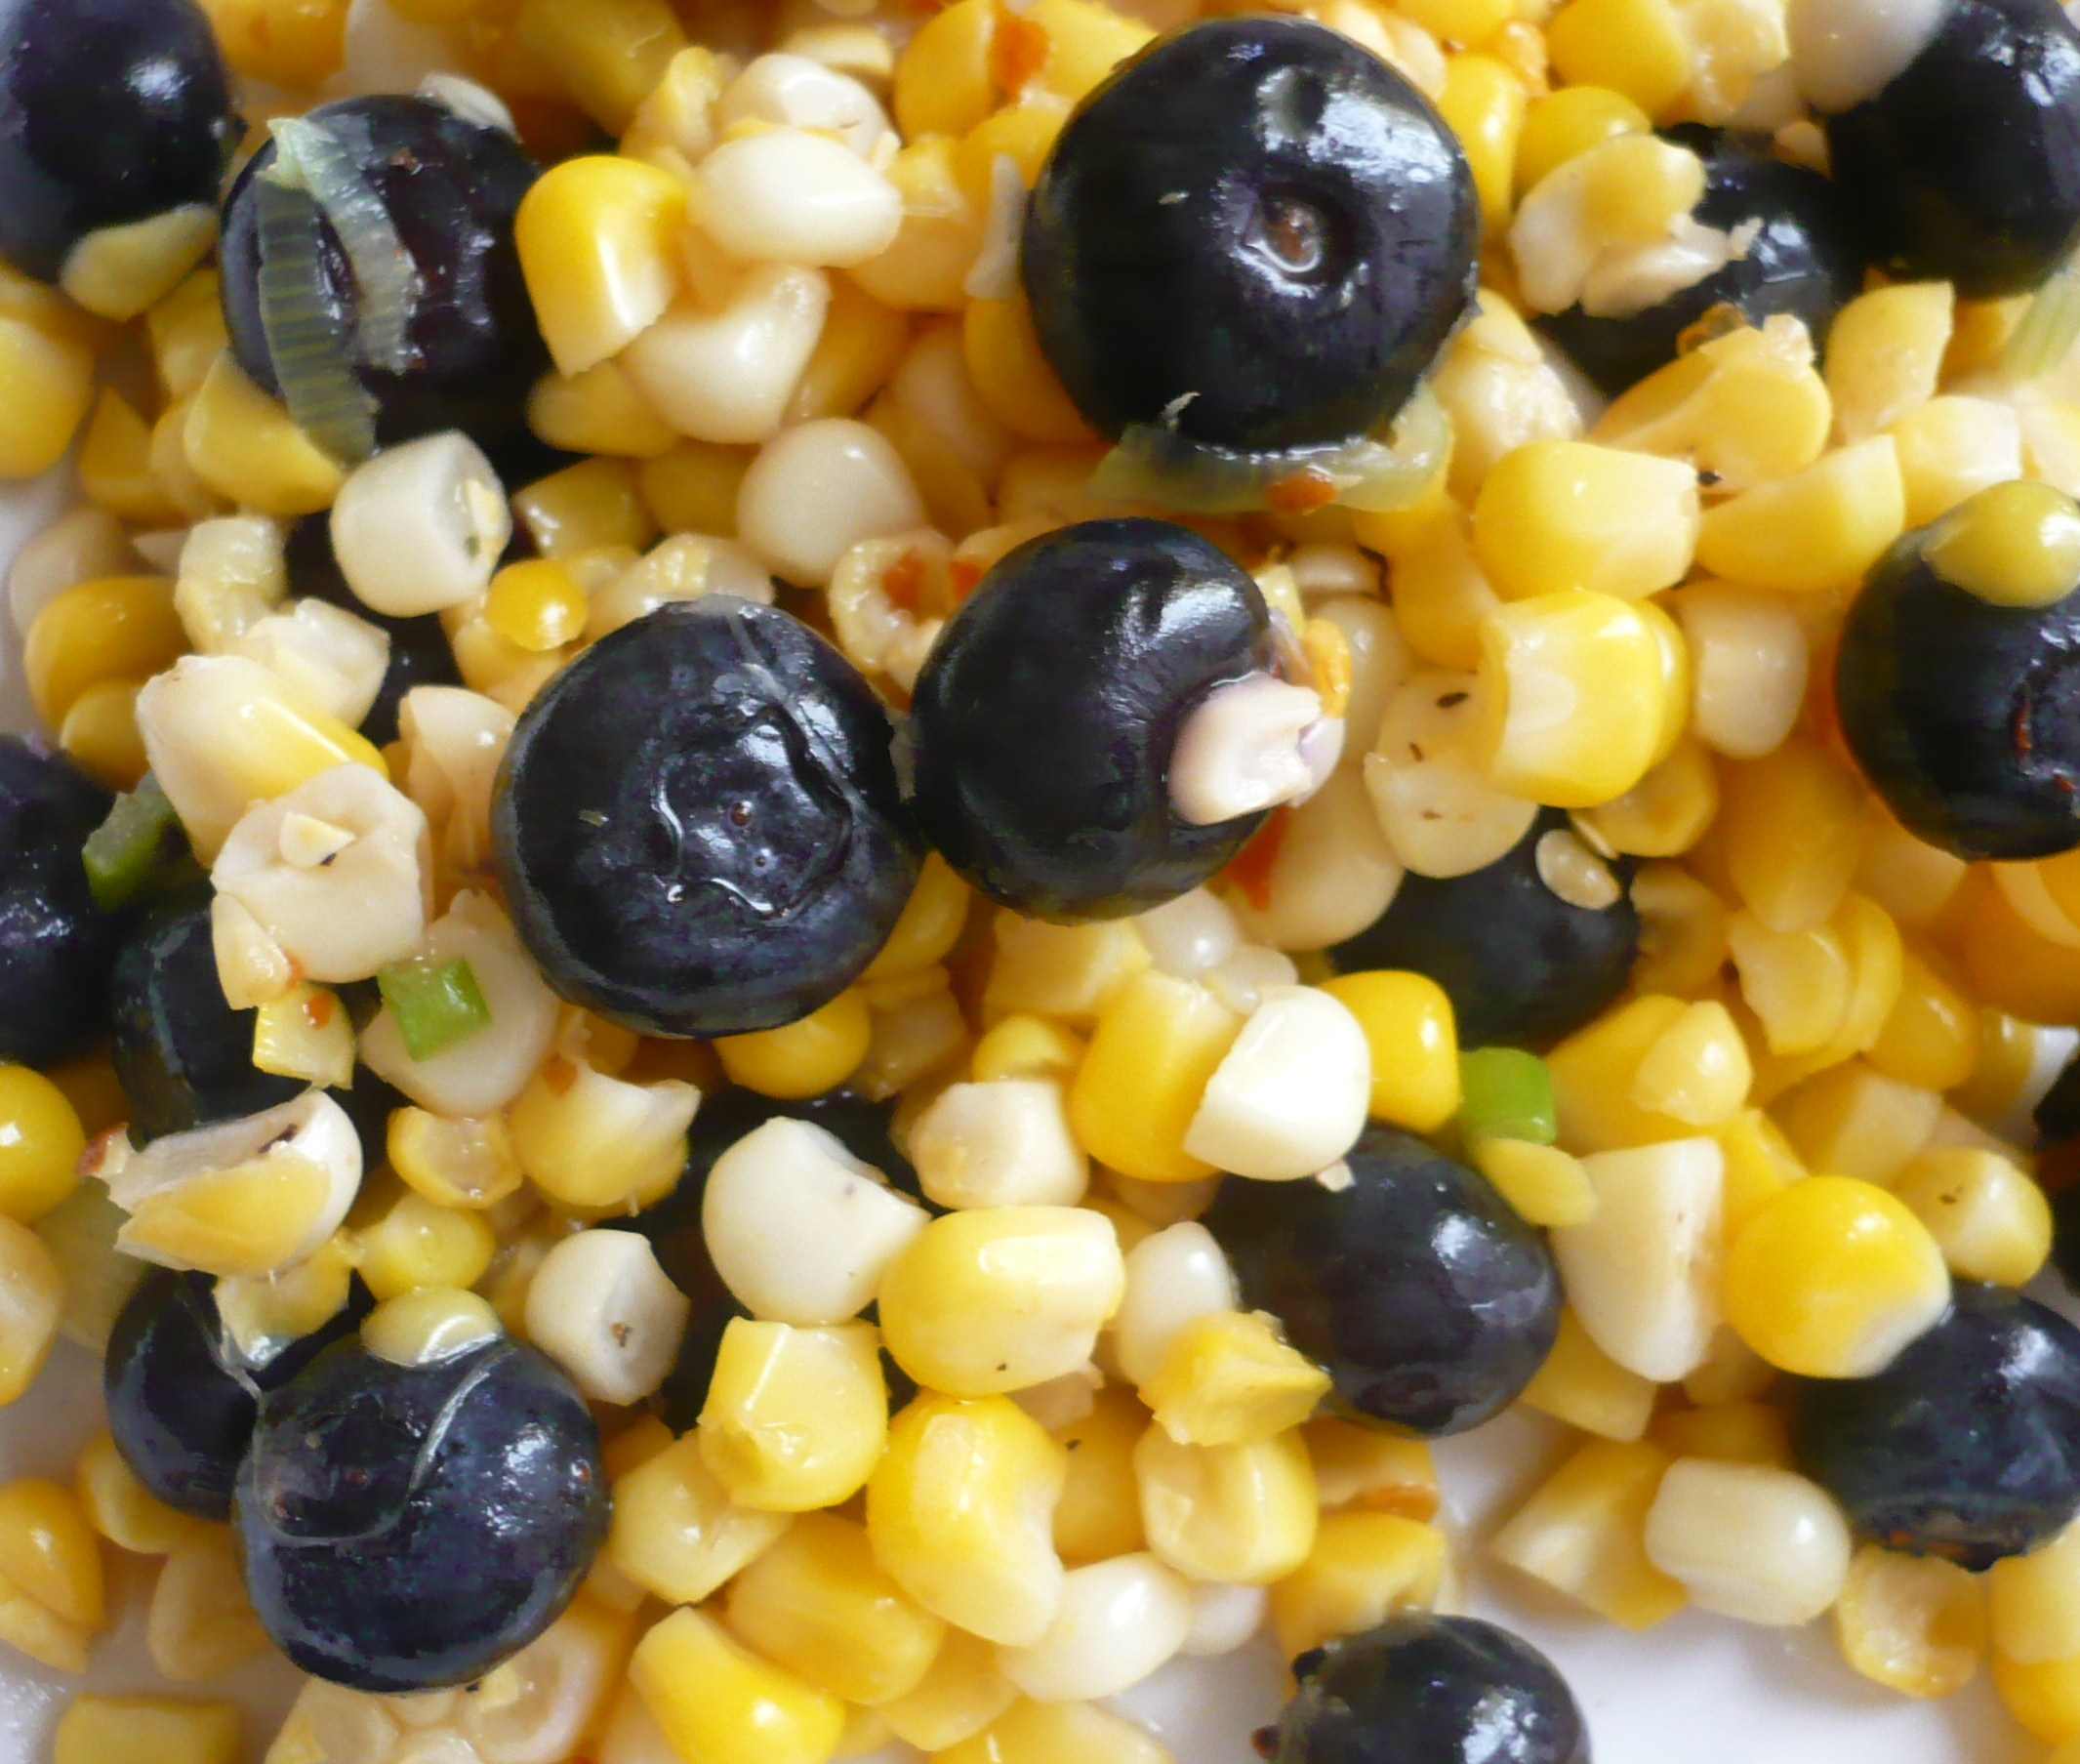 Corn and Blueberry Salad | Foodieforager's Blog